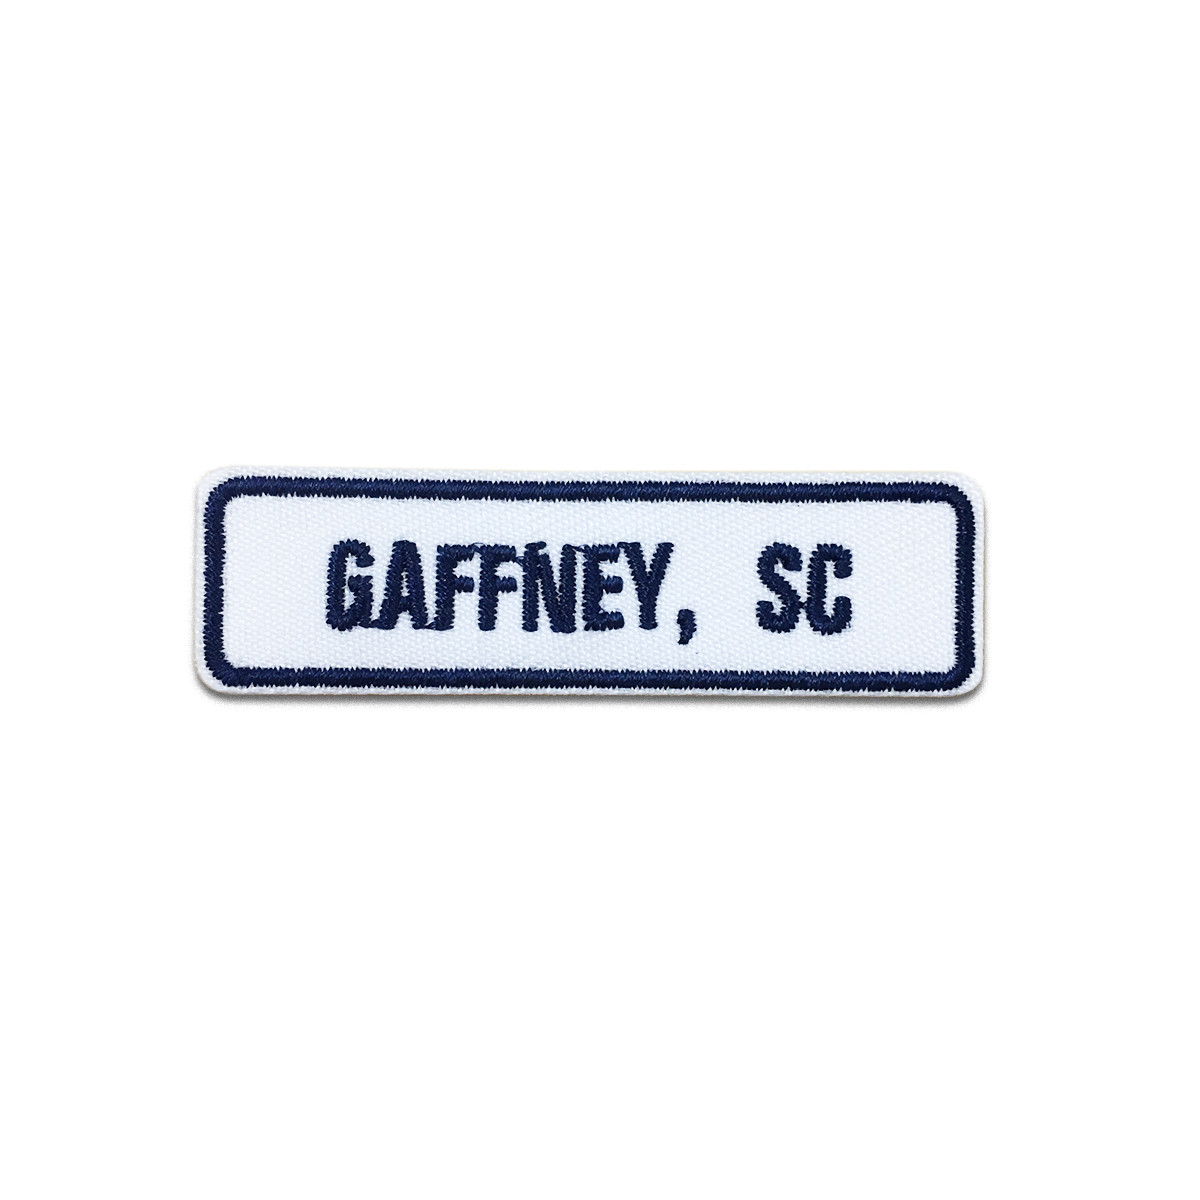 Gaffney, SC Rocker Patch